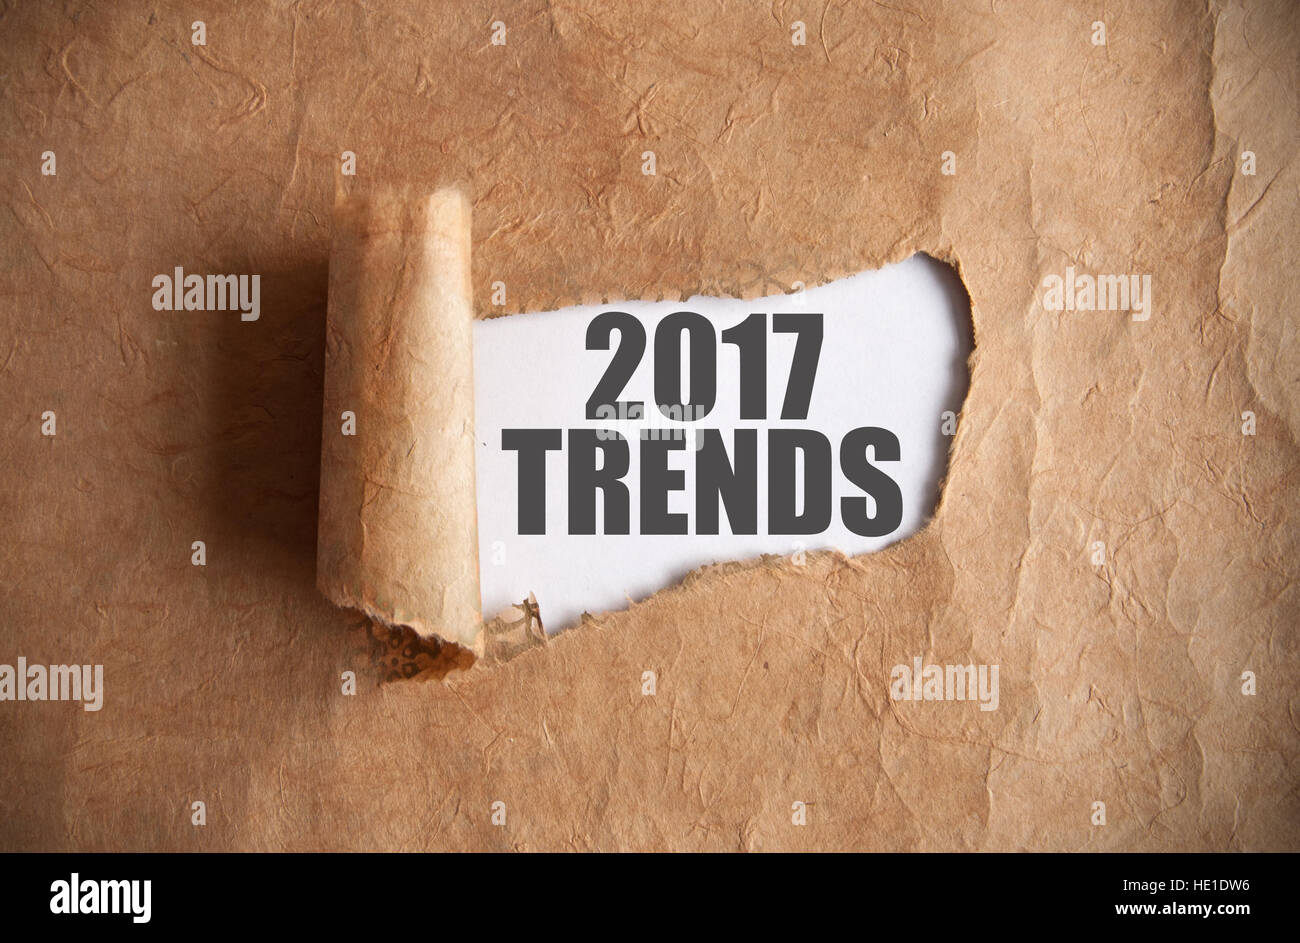 Torn piece of scroll uncovering 2017 trends underneath - Stock Image